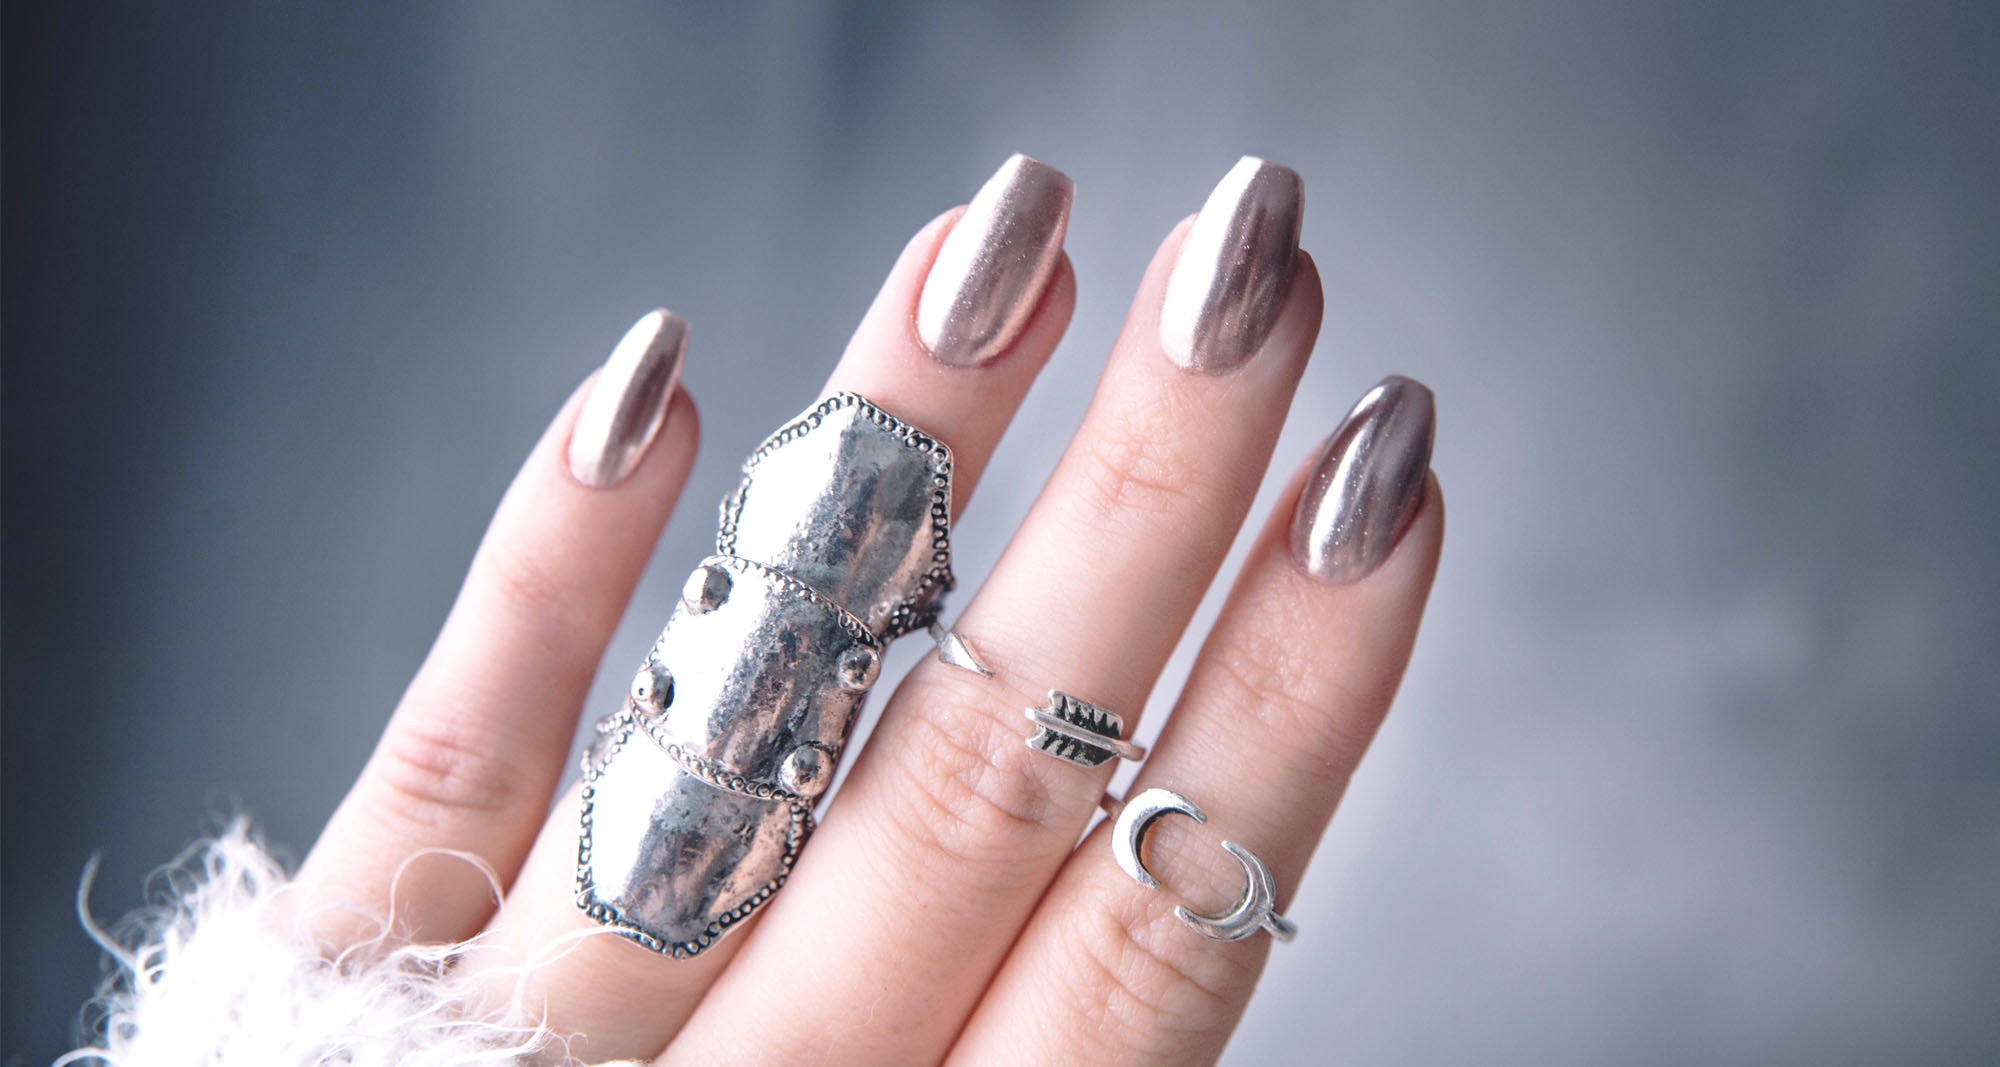 Chrome Nails How To Do It At Home In 6 Easy Steps